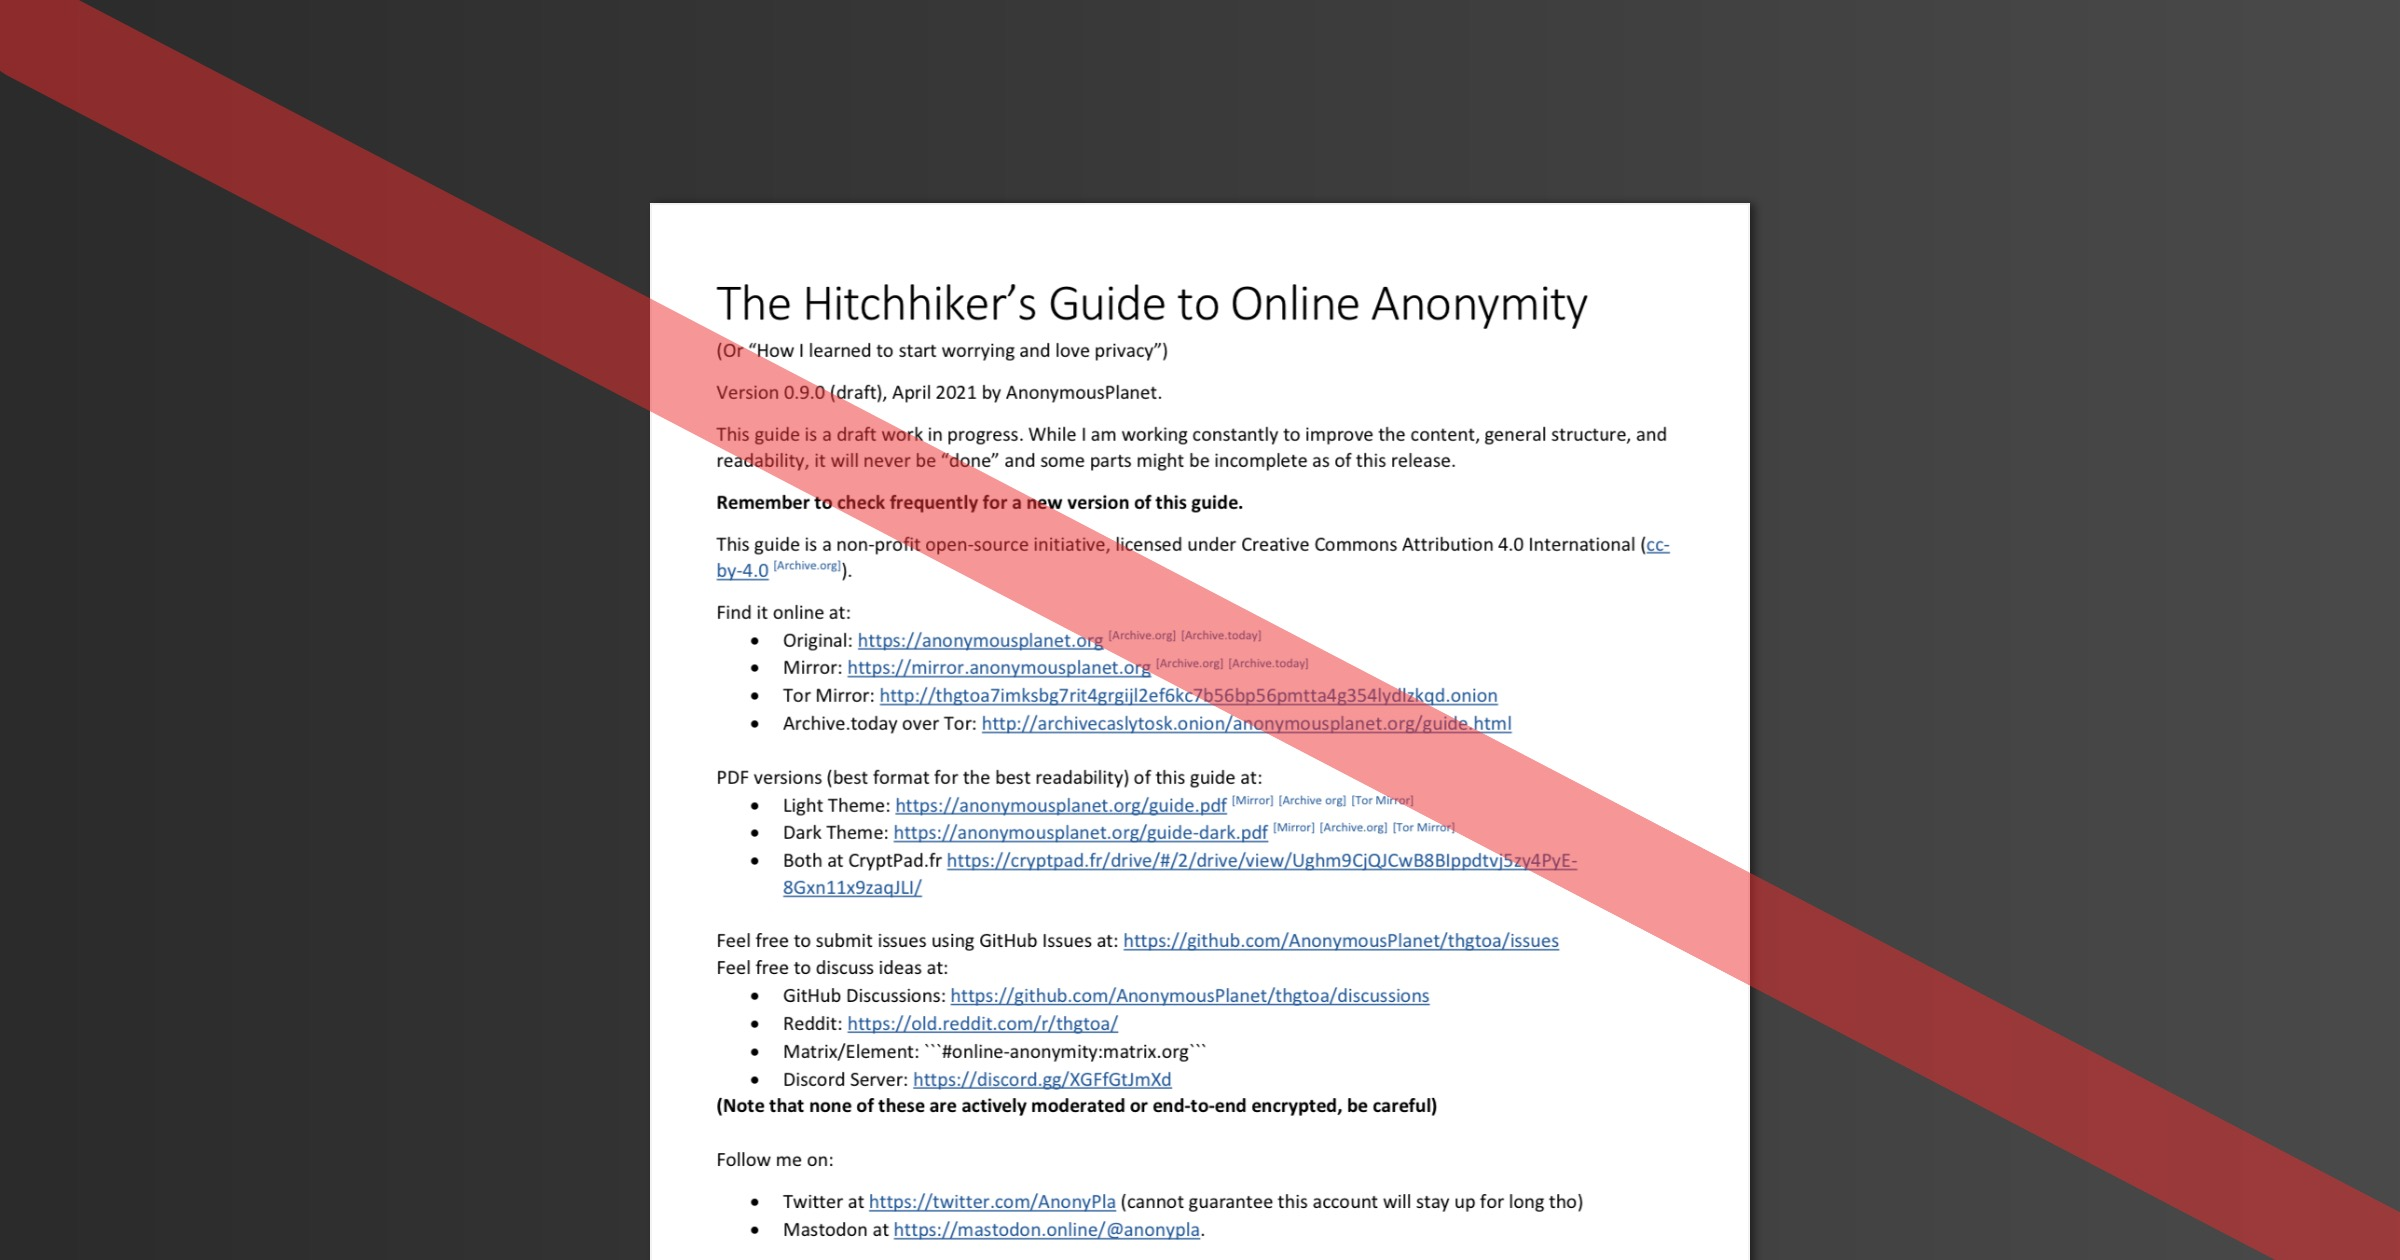 The Hitchhiker's Guide to Online Anonymity Version 9